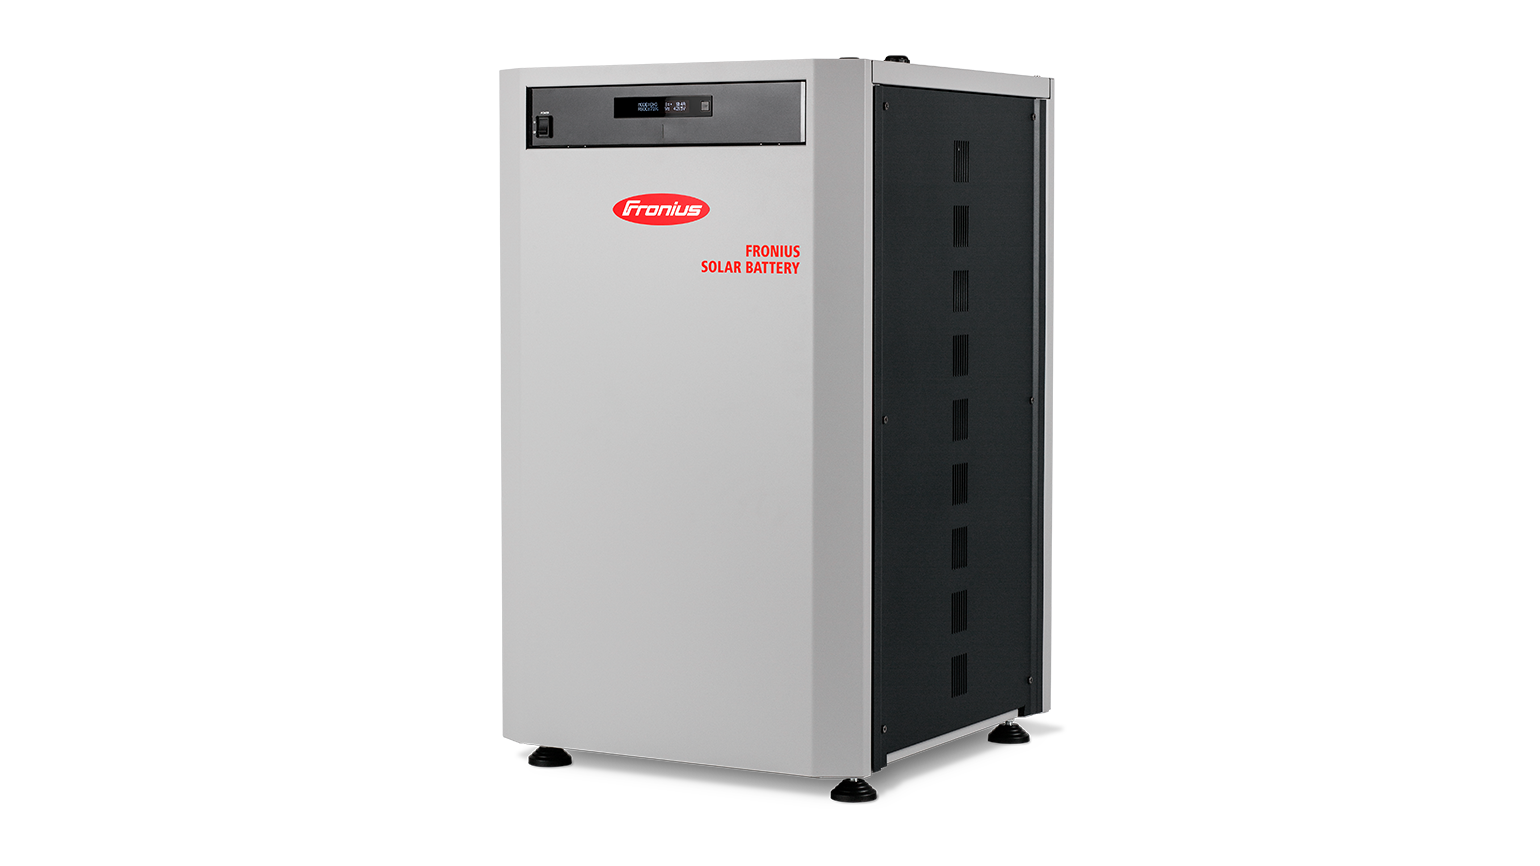 Fronius solar battery 45 product details cheapraybanclubmaster Choice Image